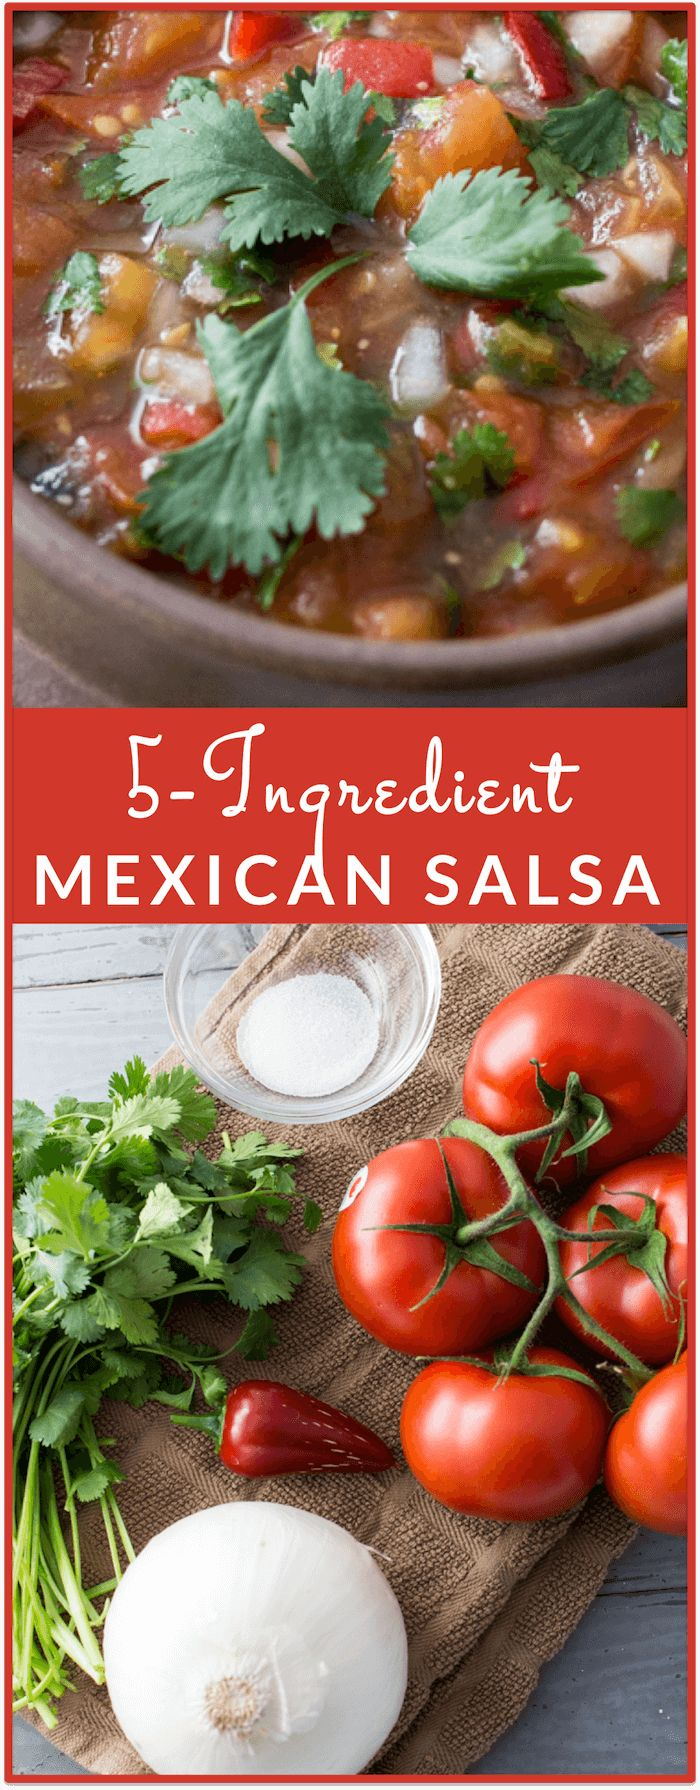 This is an authentic Mexican salsa that's healthy and made from scratch. Even better, it only has 5 ingredients and is super easy to prep and make. This is a recipe that I got from my mom, who learned how to make salsa from her former neighbor who was from Mexico. It is my favorite salsa to date, and tastes fresher and better than the ones I get in restaurants!